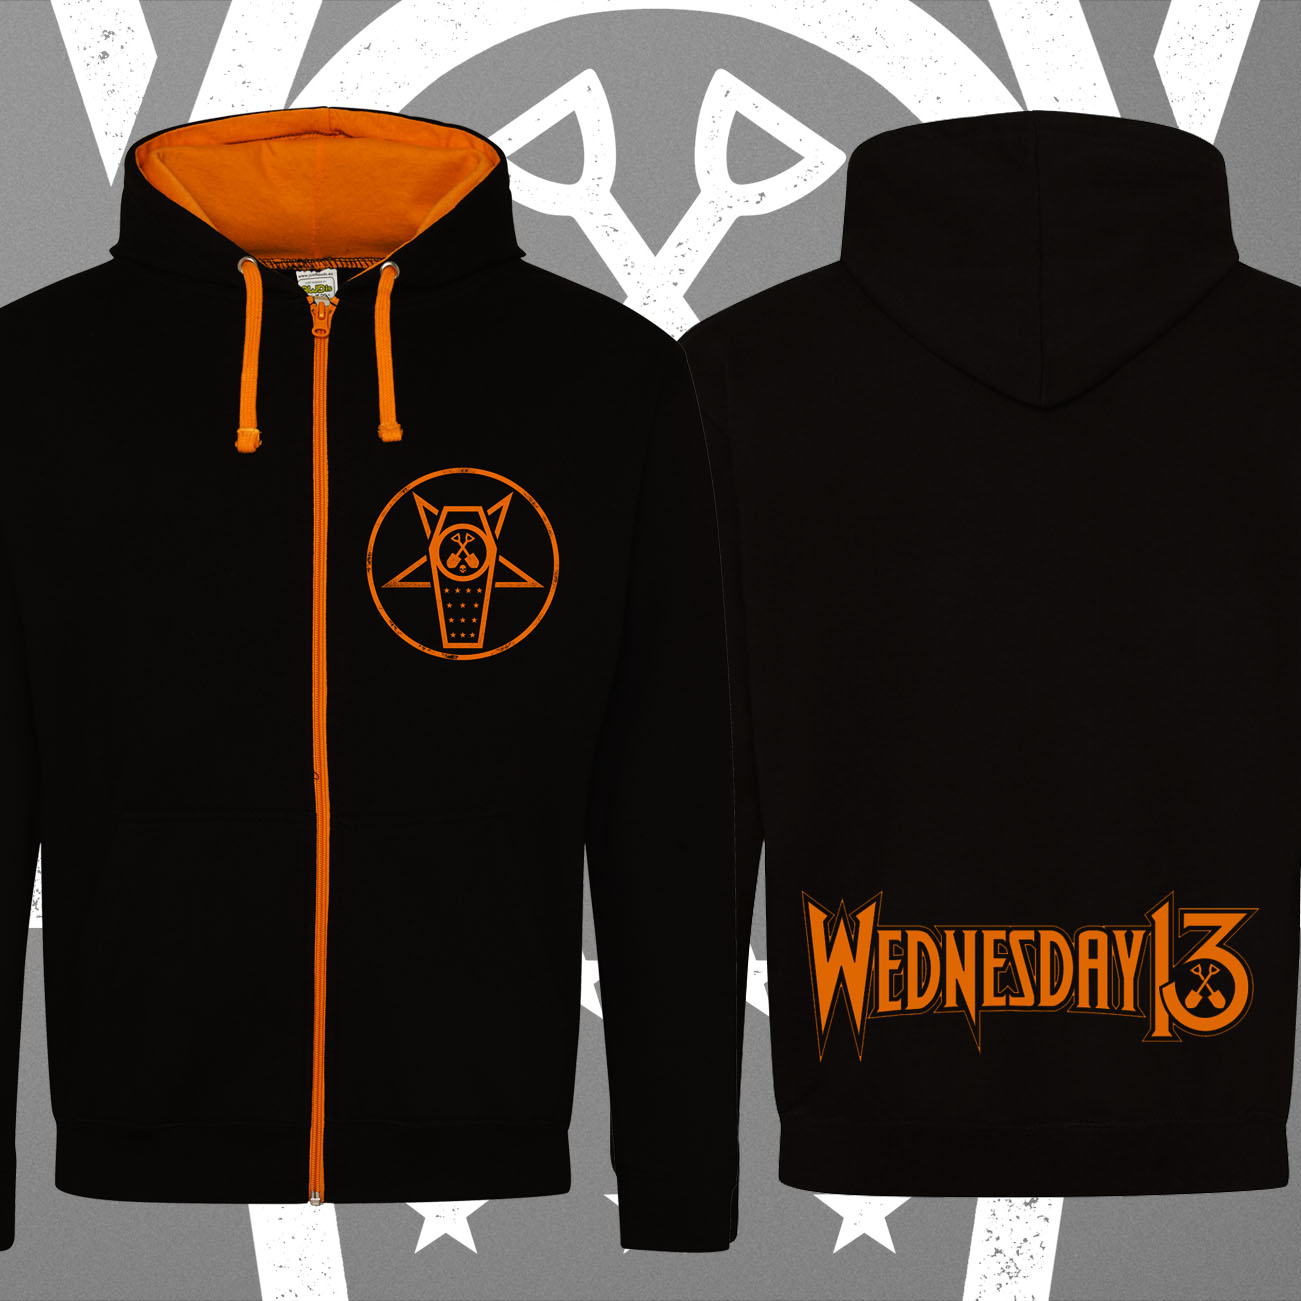 Wednesday 13 - 'Casket' Zip Hoody - Wednesday13